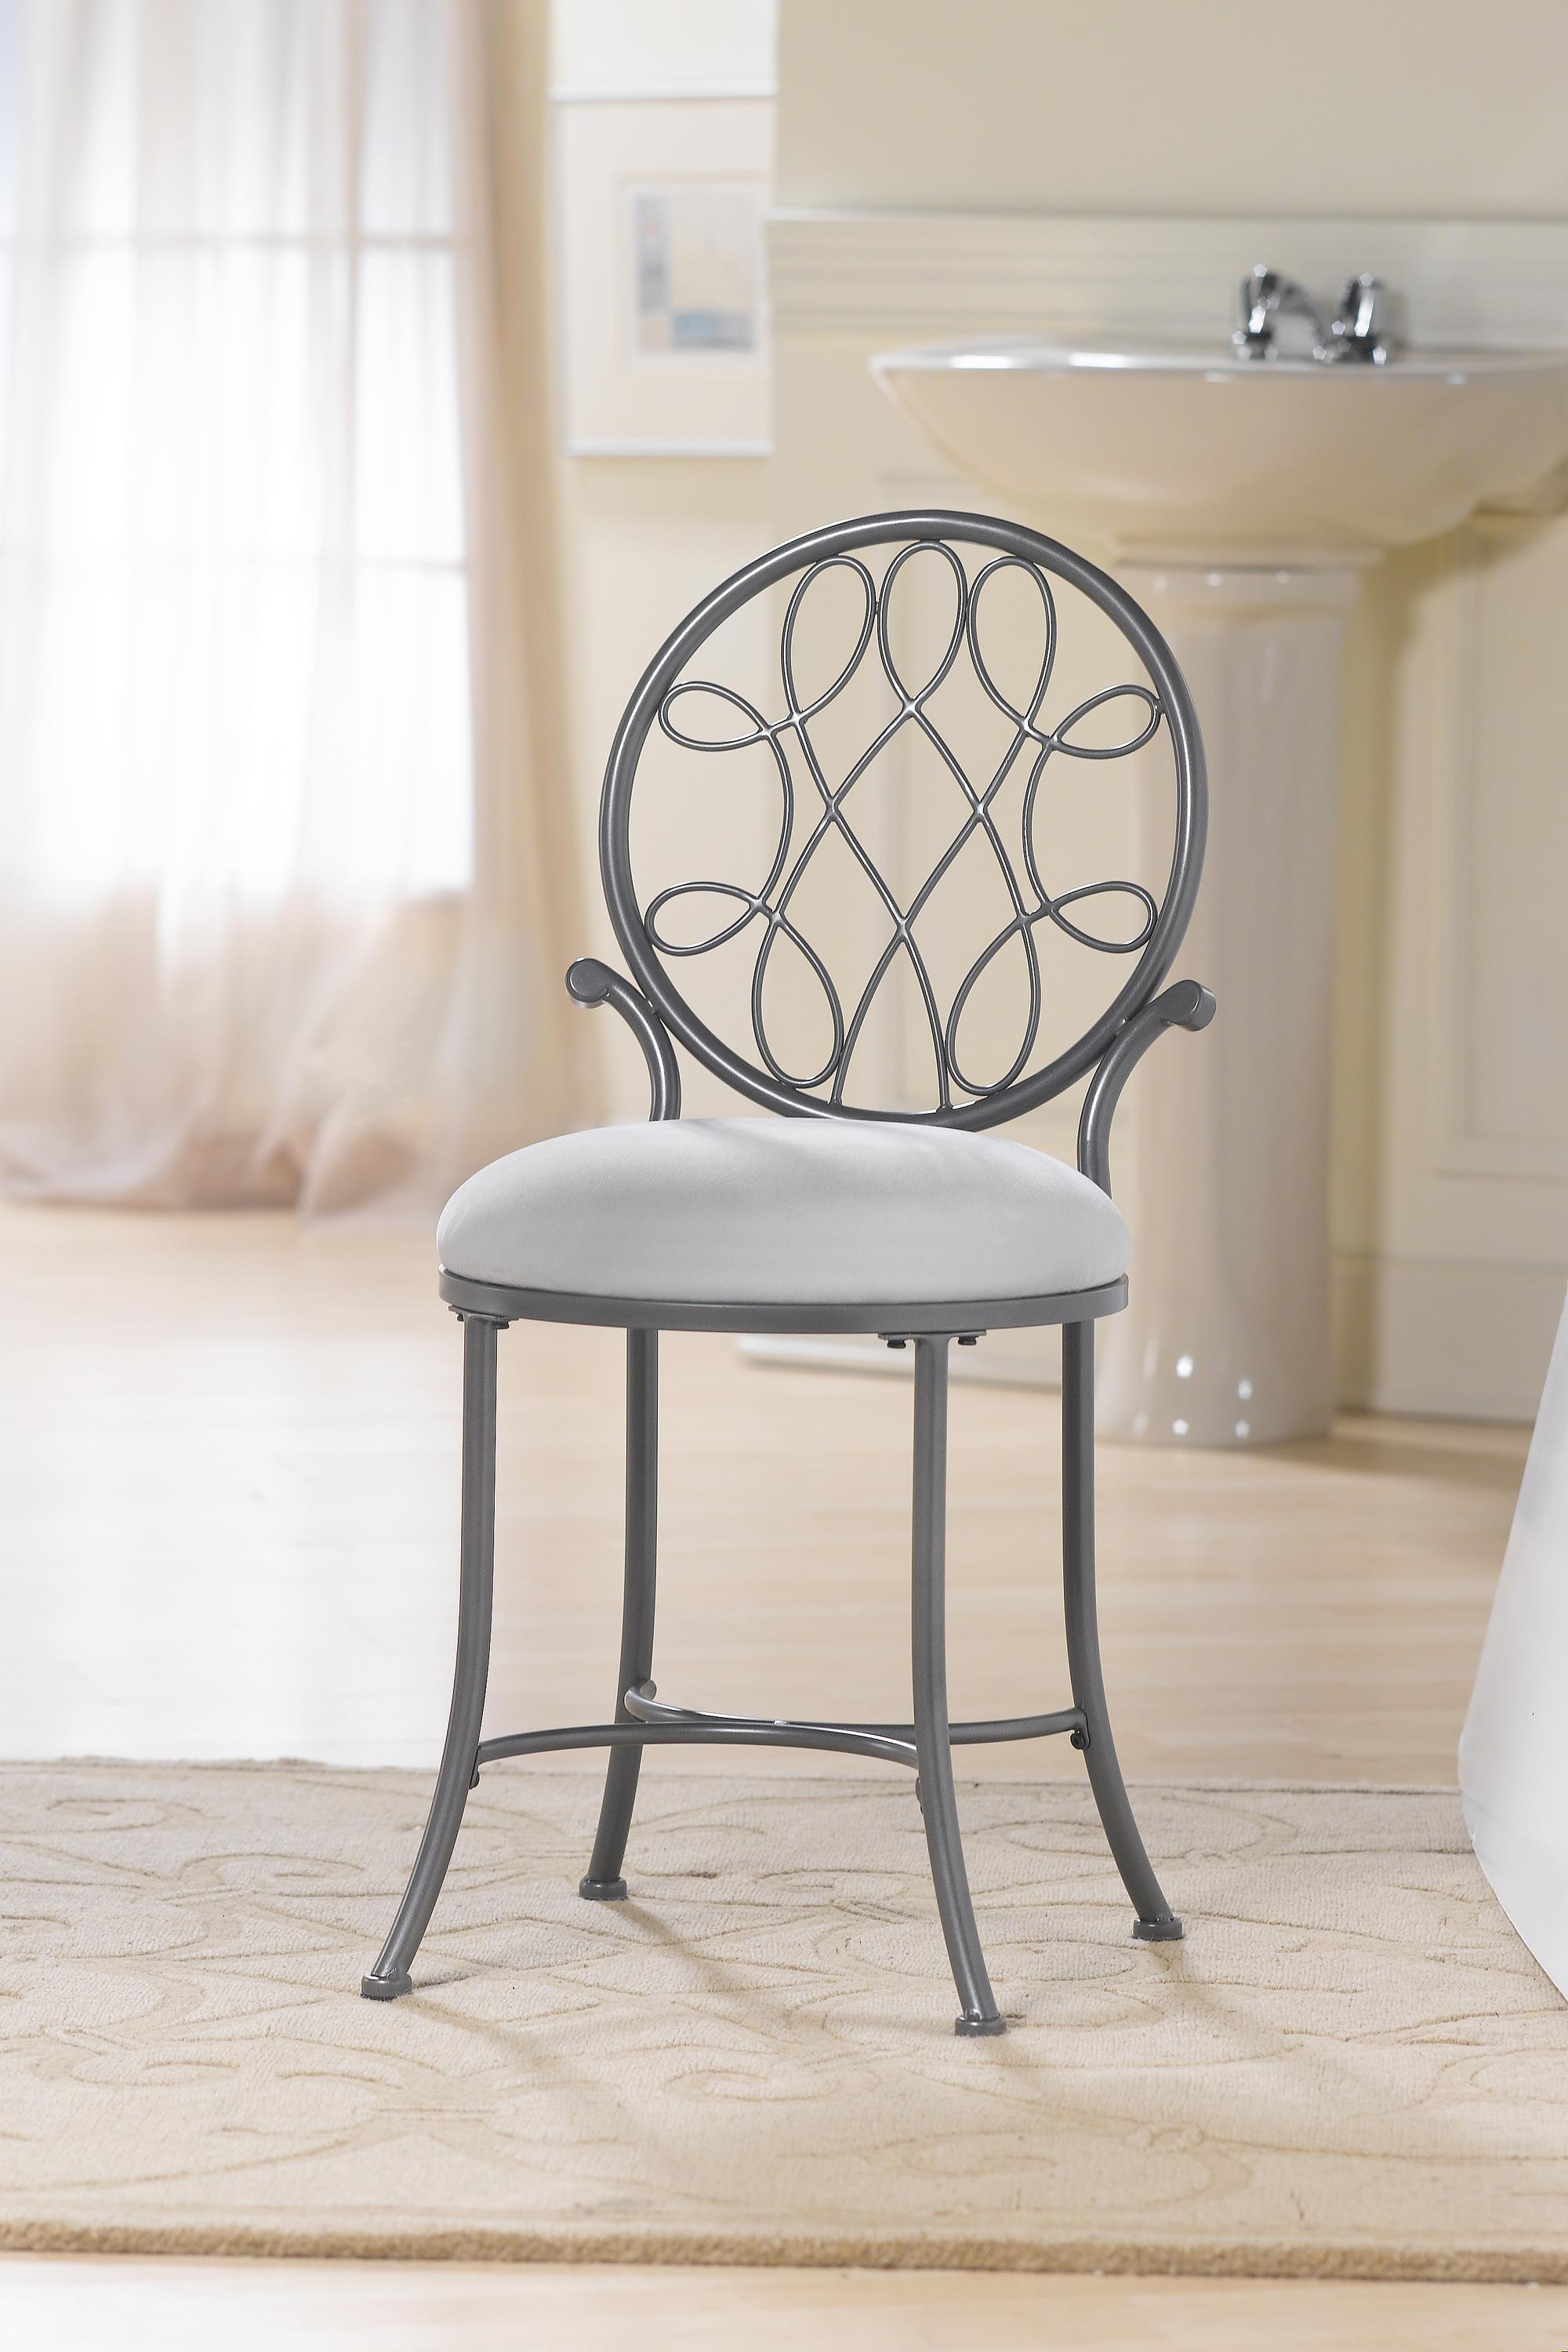 O Malley Vanity Stool With A Knot Design By Hillsdale